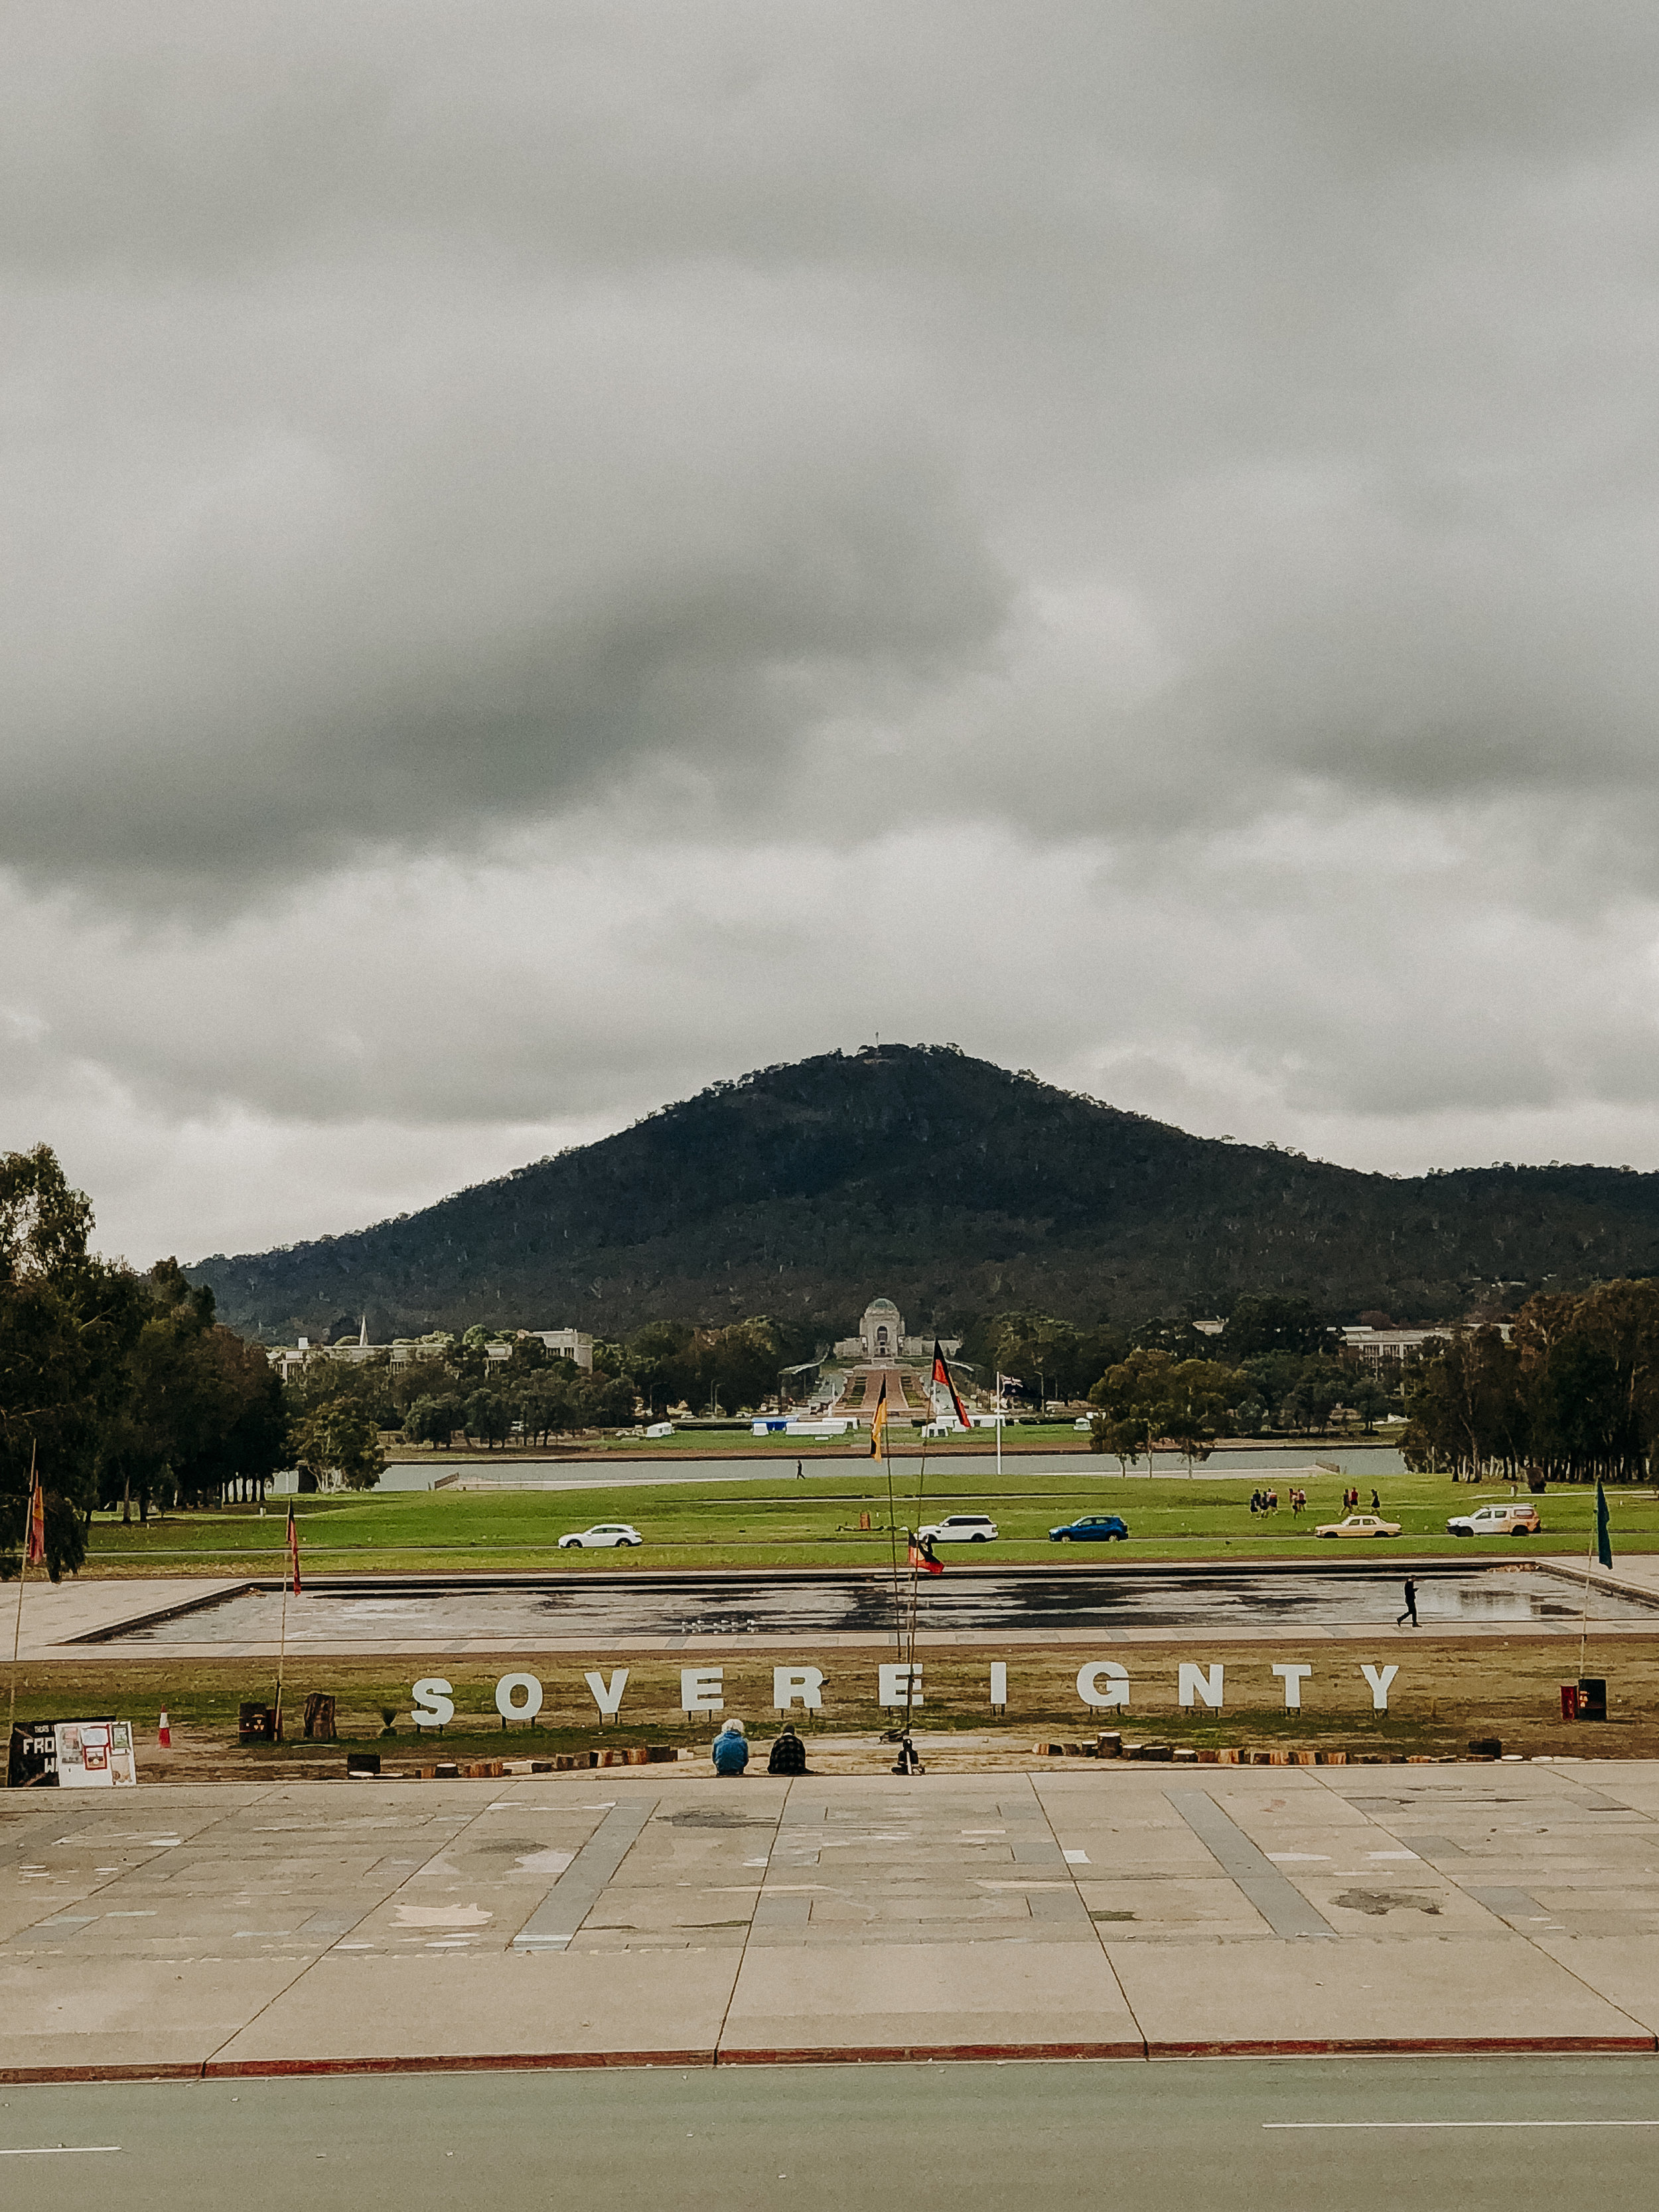 View of the Anzac Parade as seen from the new Parliament House. That is the Australian War Memorial and Mt Ainsley in the distance.